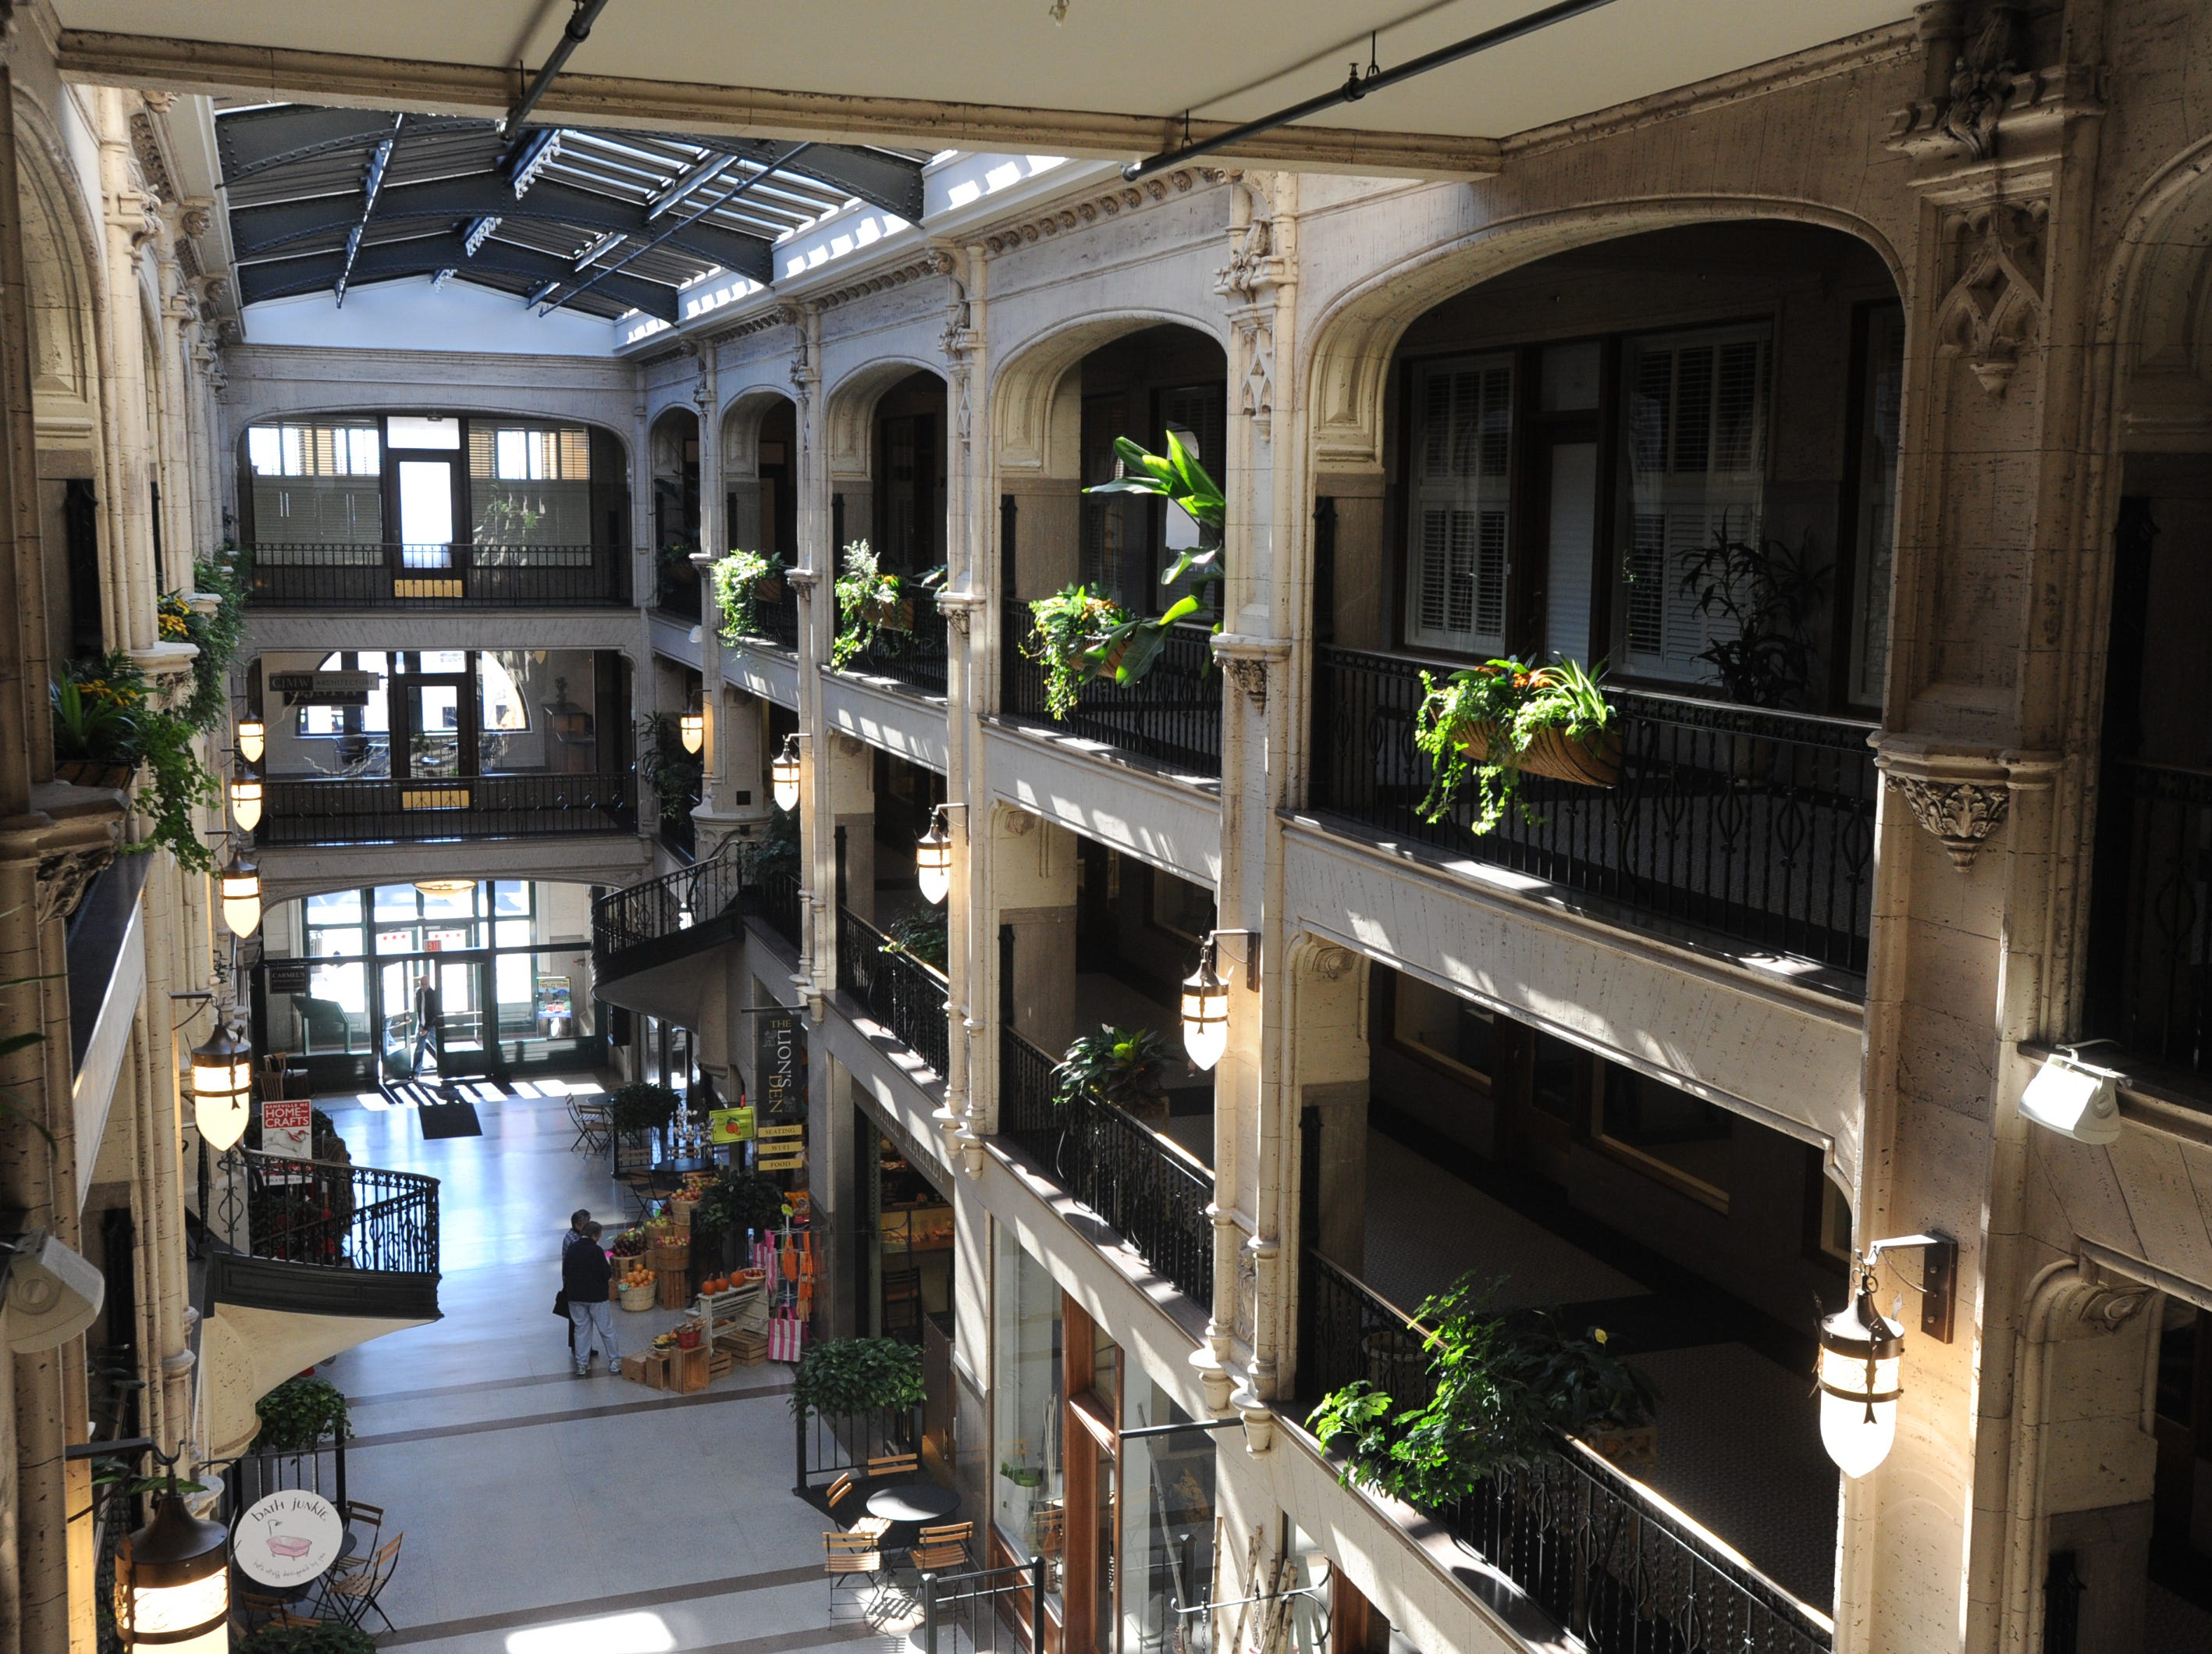 Plants can be found throughout the arcade, sometimes worked in as part of the architecture.